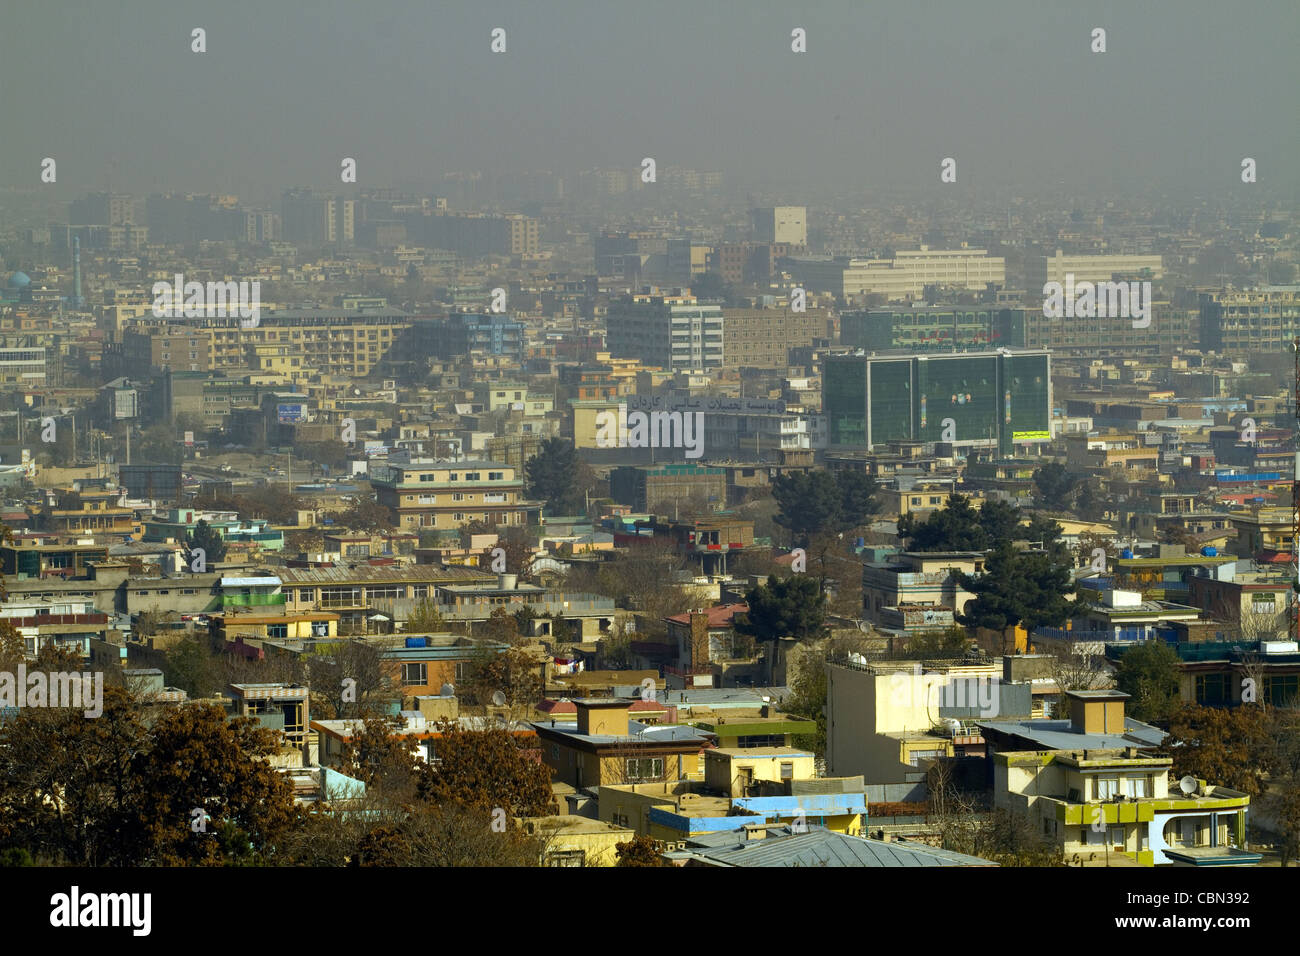 Aerial view of Kabul Afghanistan - Stock Image